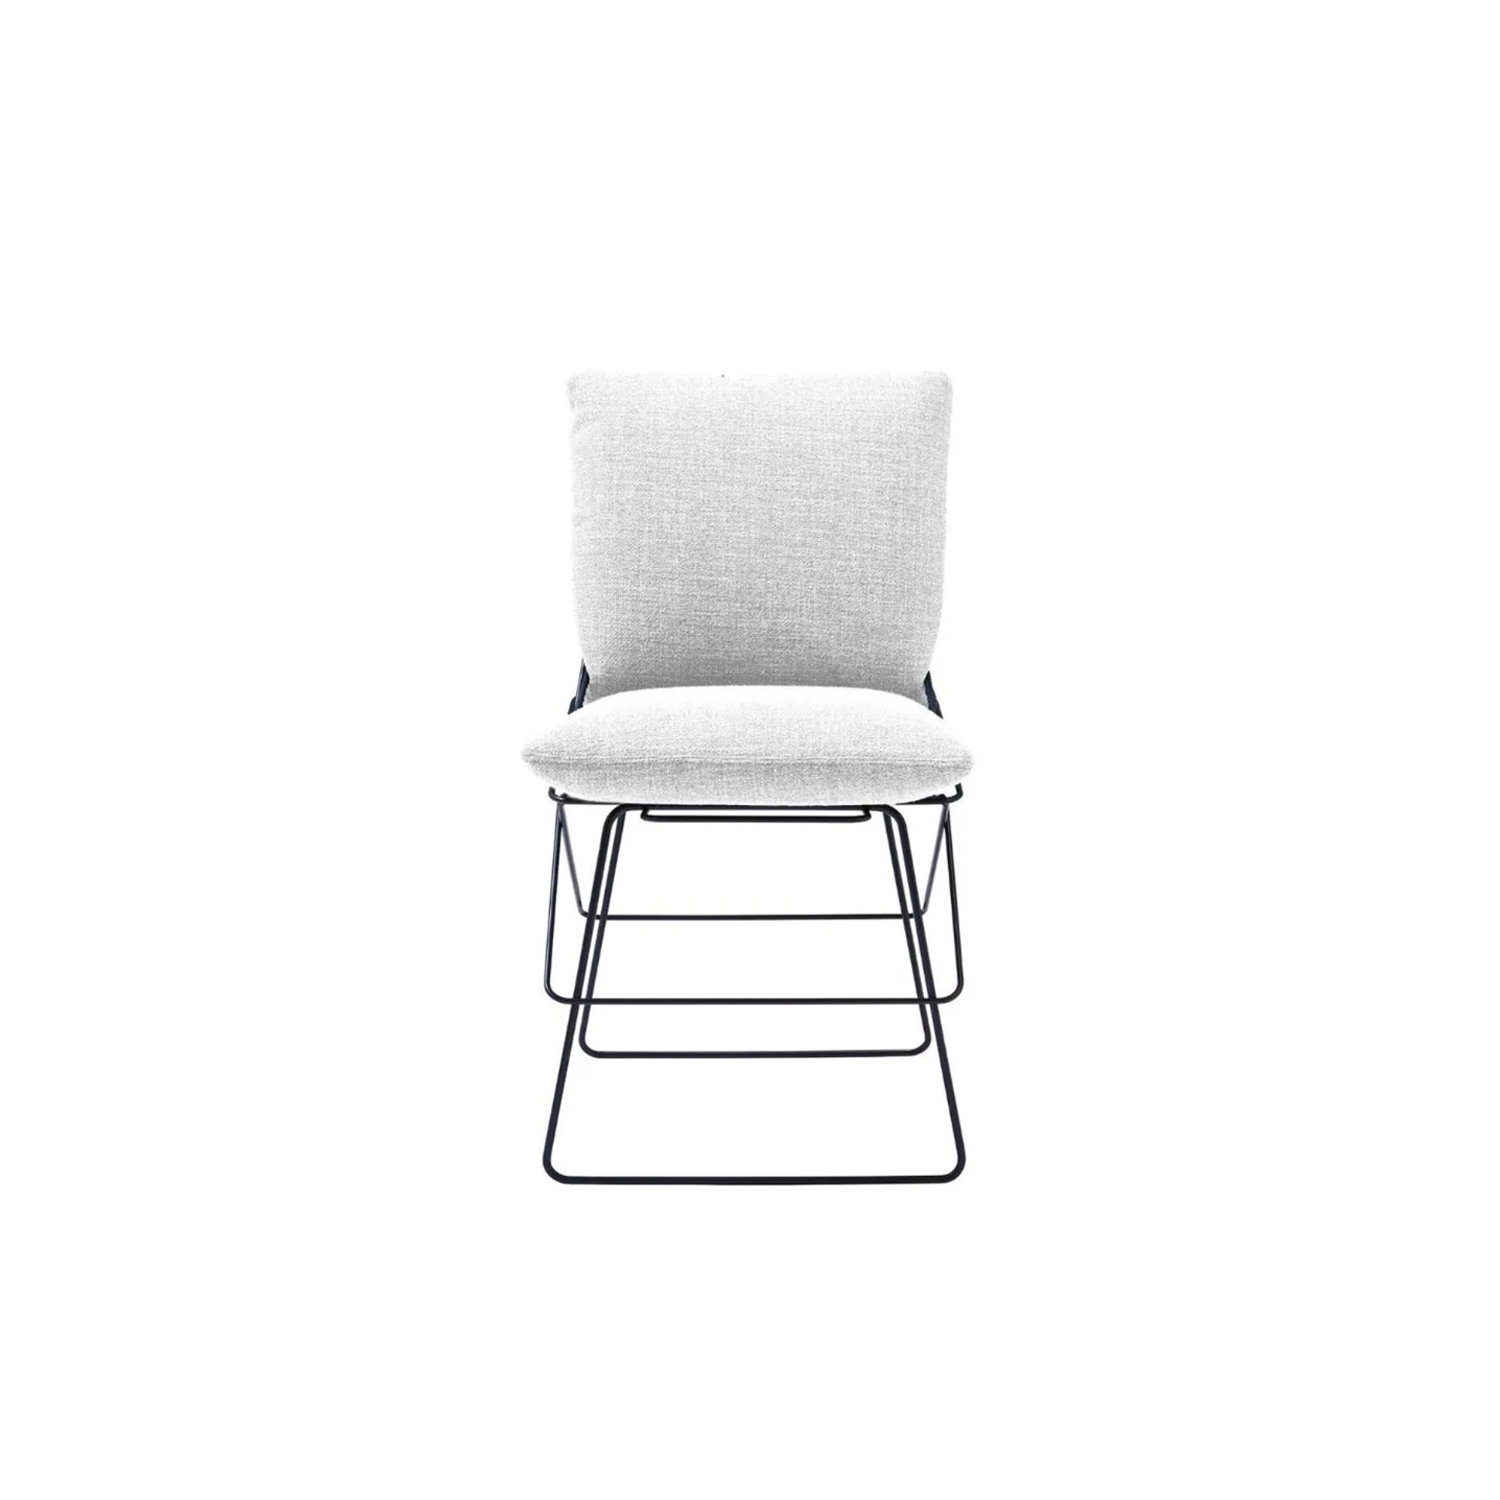 Sof Sof Outdoor Chair - This chair has harmonious lines that convey the essential elegance of the design by Enzo Mari. Made by Driade in 1972, and redone in 2015, Sof Sof is a timeless icon. The structure is almost a sculpture, made up of nine steel rod rings that simultaneously define the top of the seat and the shape of the back   | Matter of Stuff